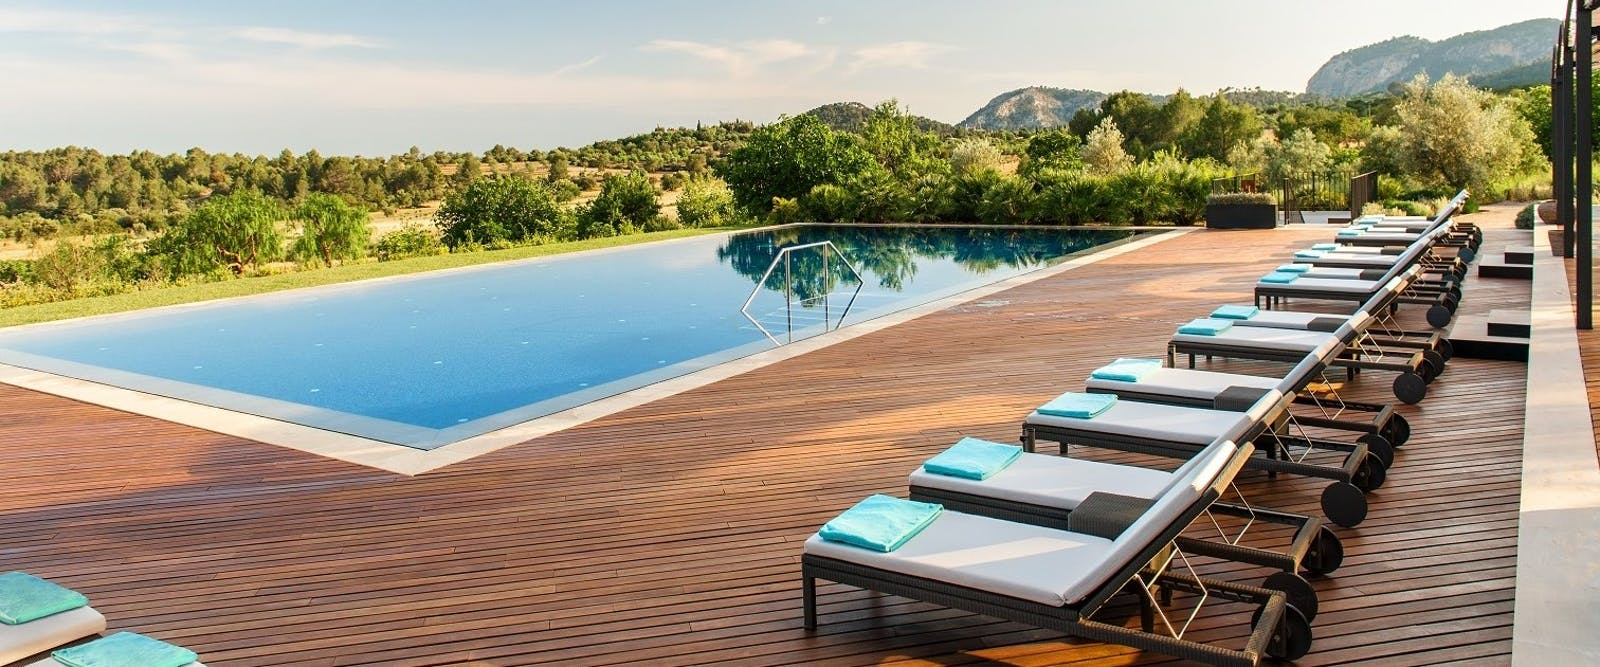 Pool Suite at Castell Son Claret, Mallorca, Spain